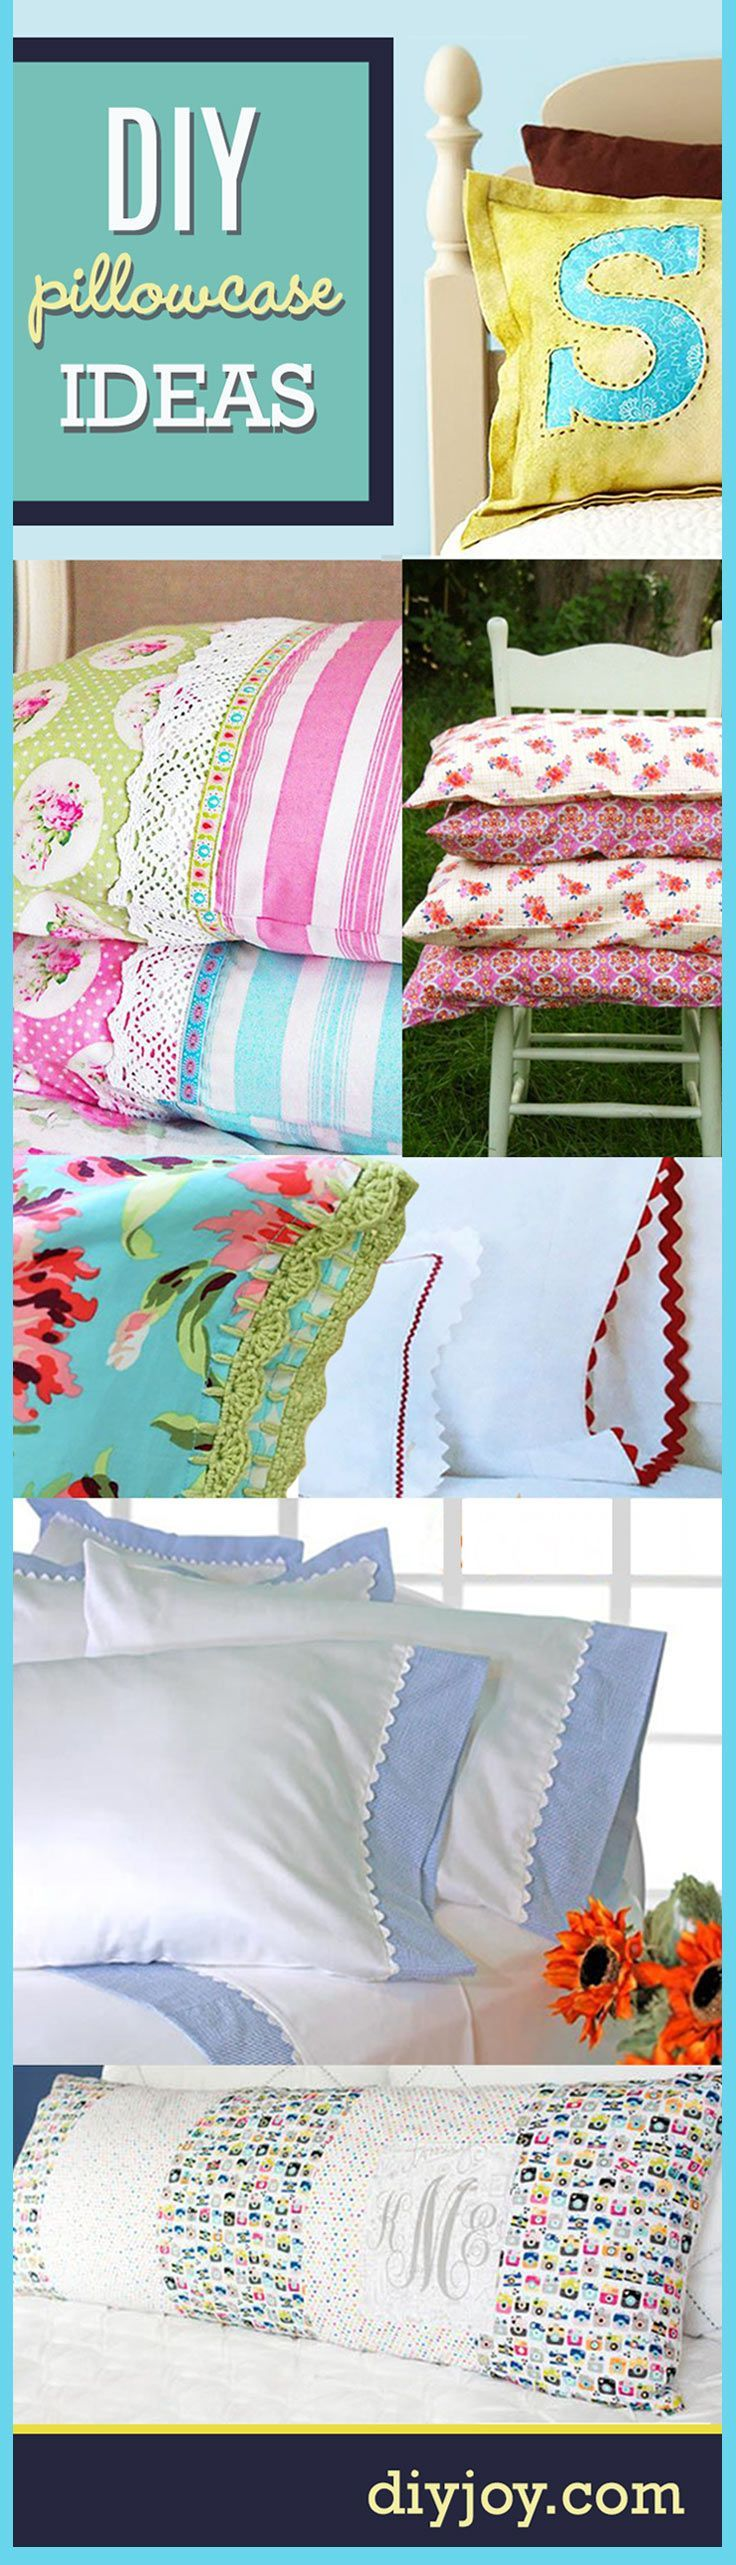 Sewing projects for the home diy pillowcase ideas costura fundas diy pillowcases and diy sewing projects for pillows easy and creative do it yourself bedroom solutioingenieria Gallery